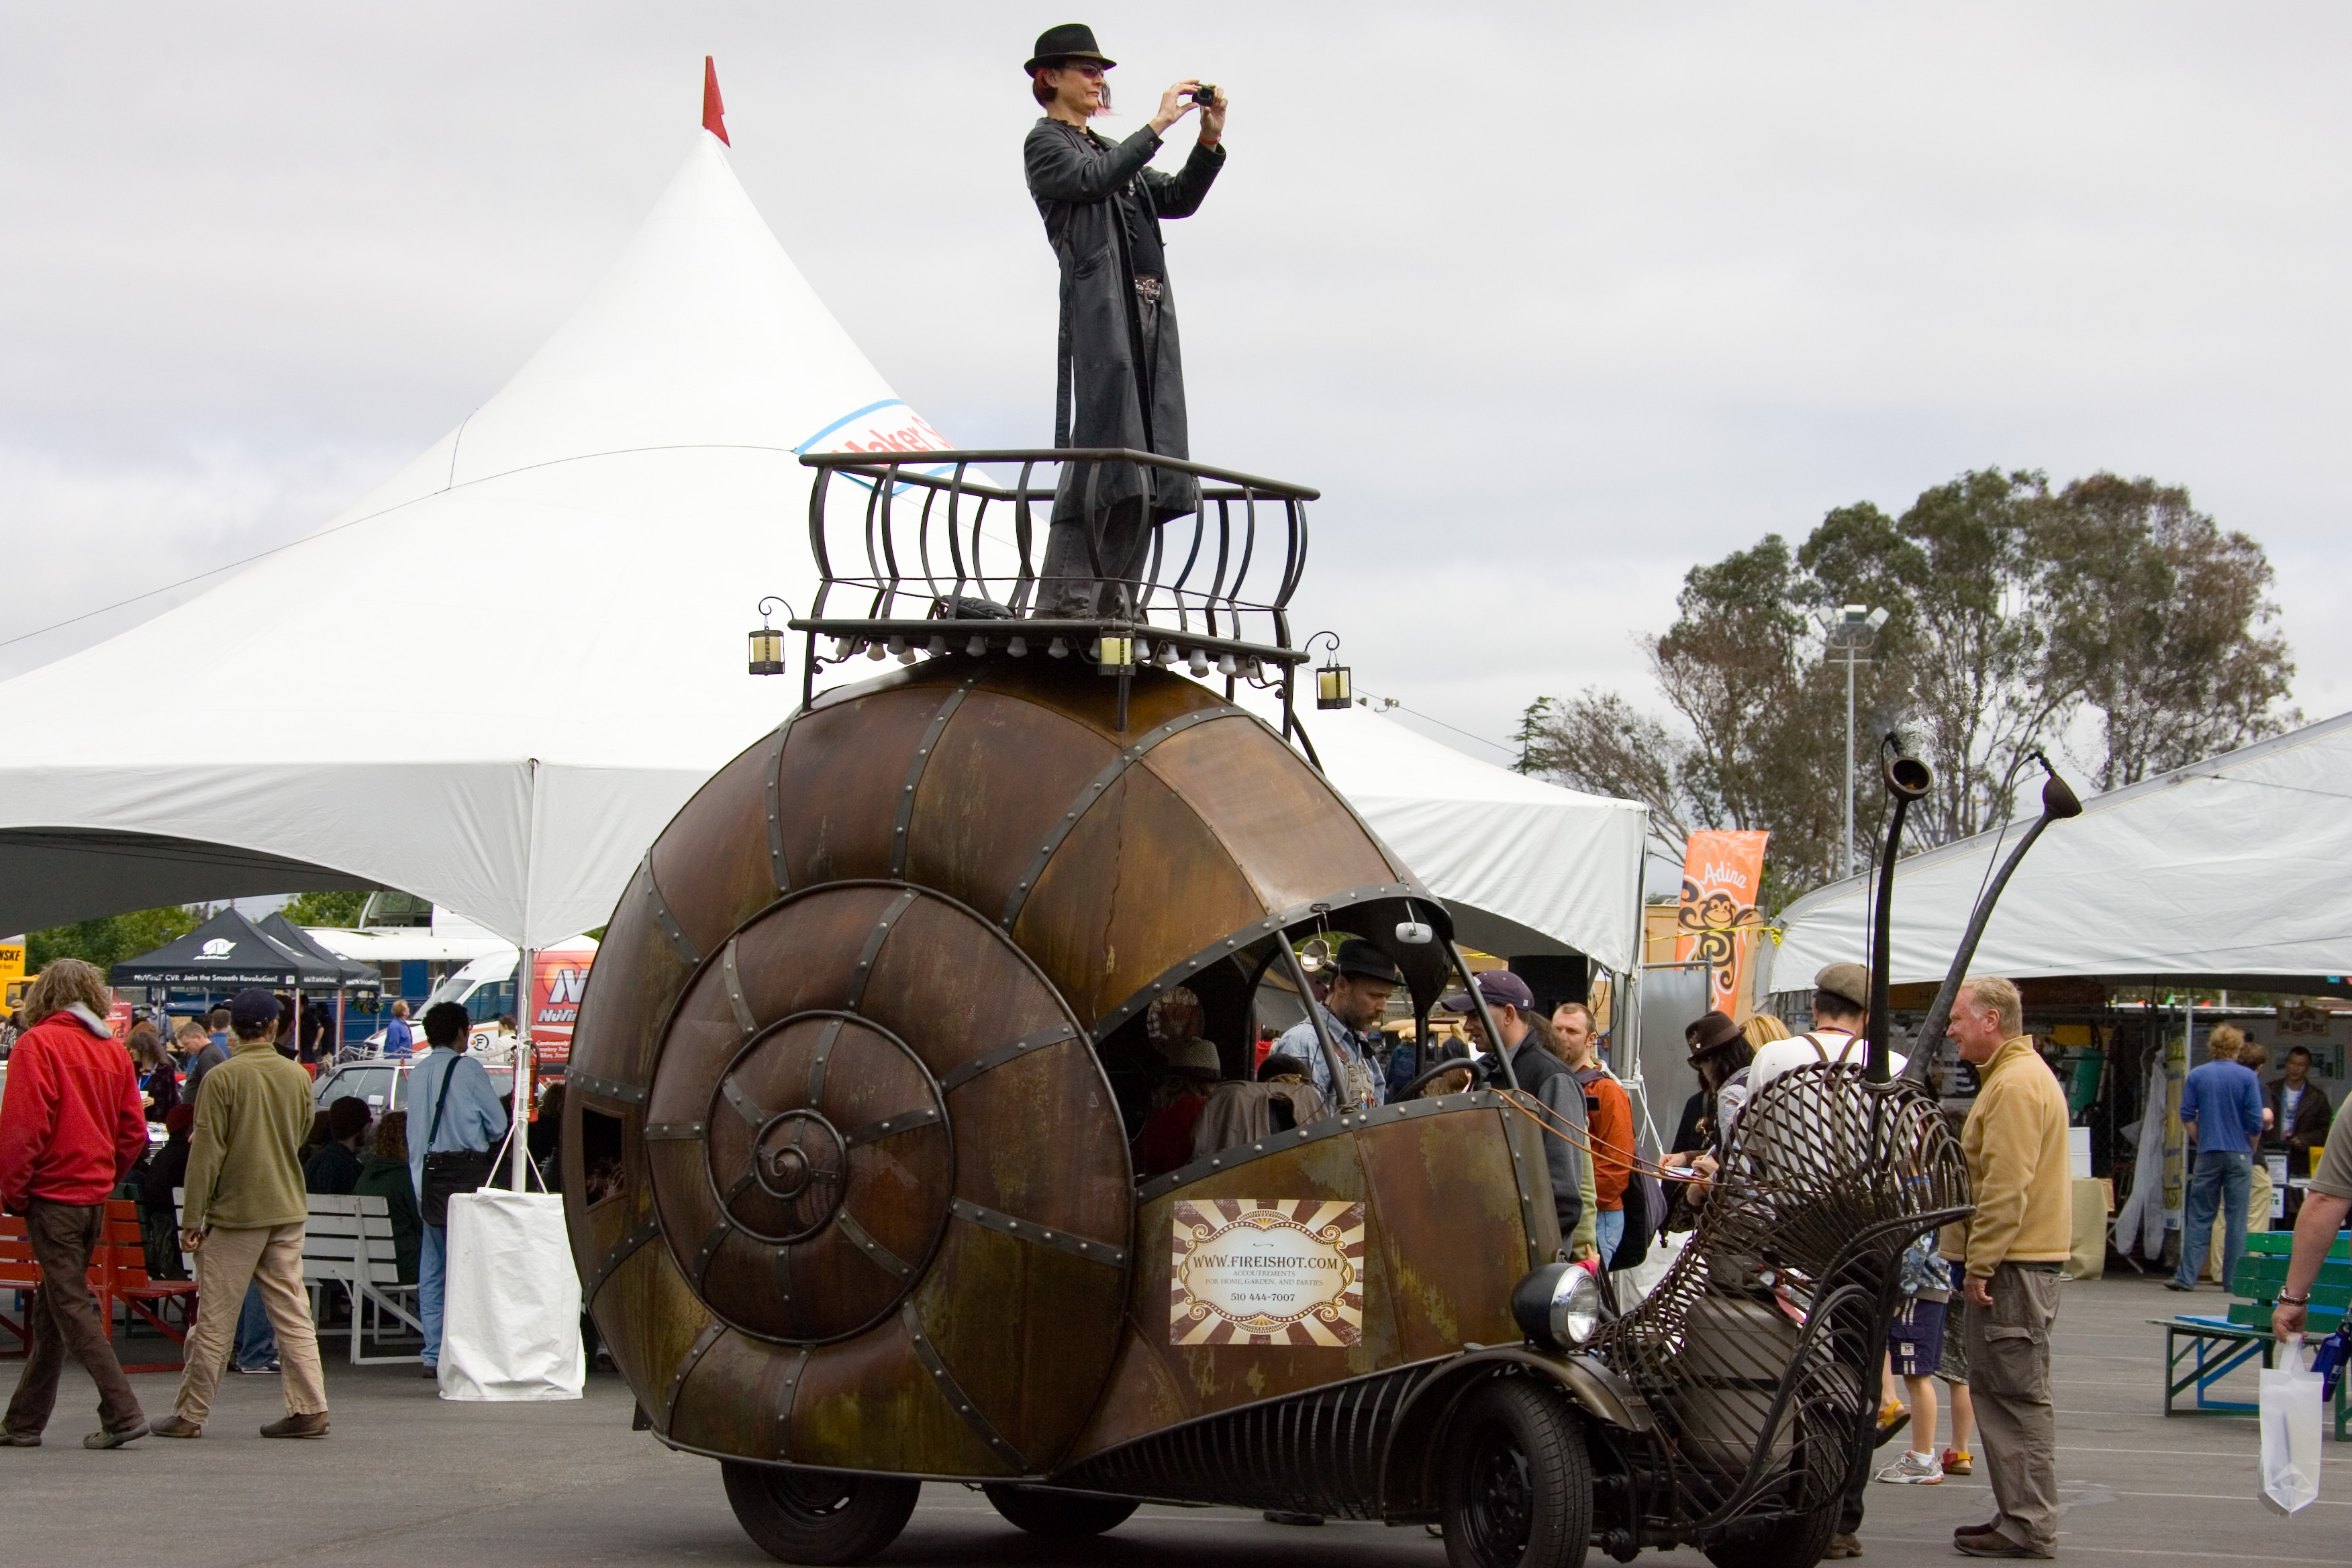 Ksw Maker Faire Event